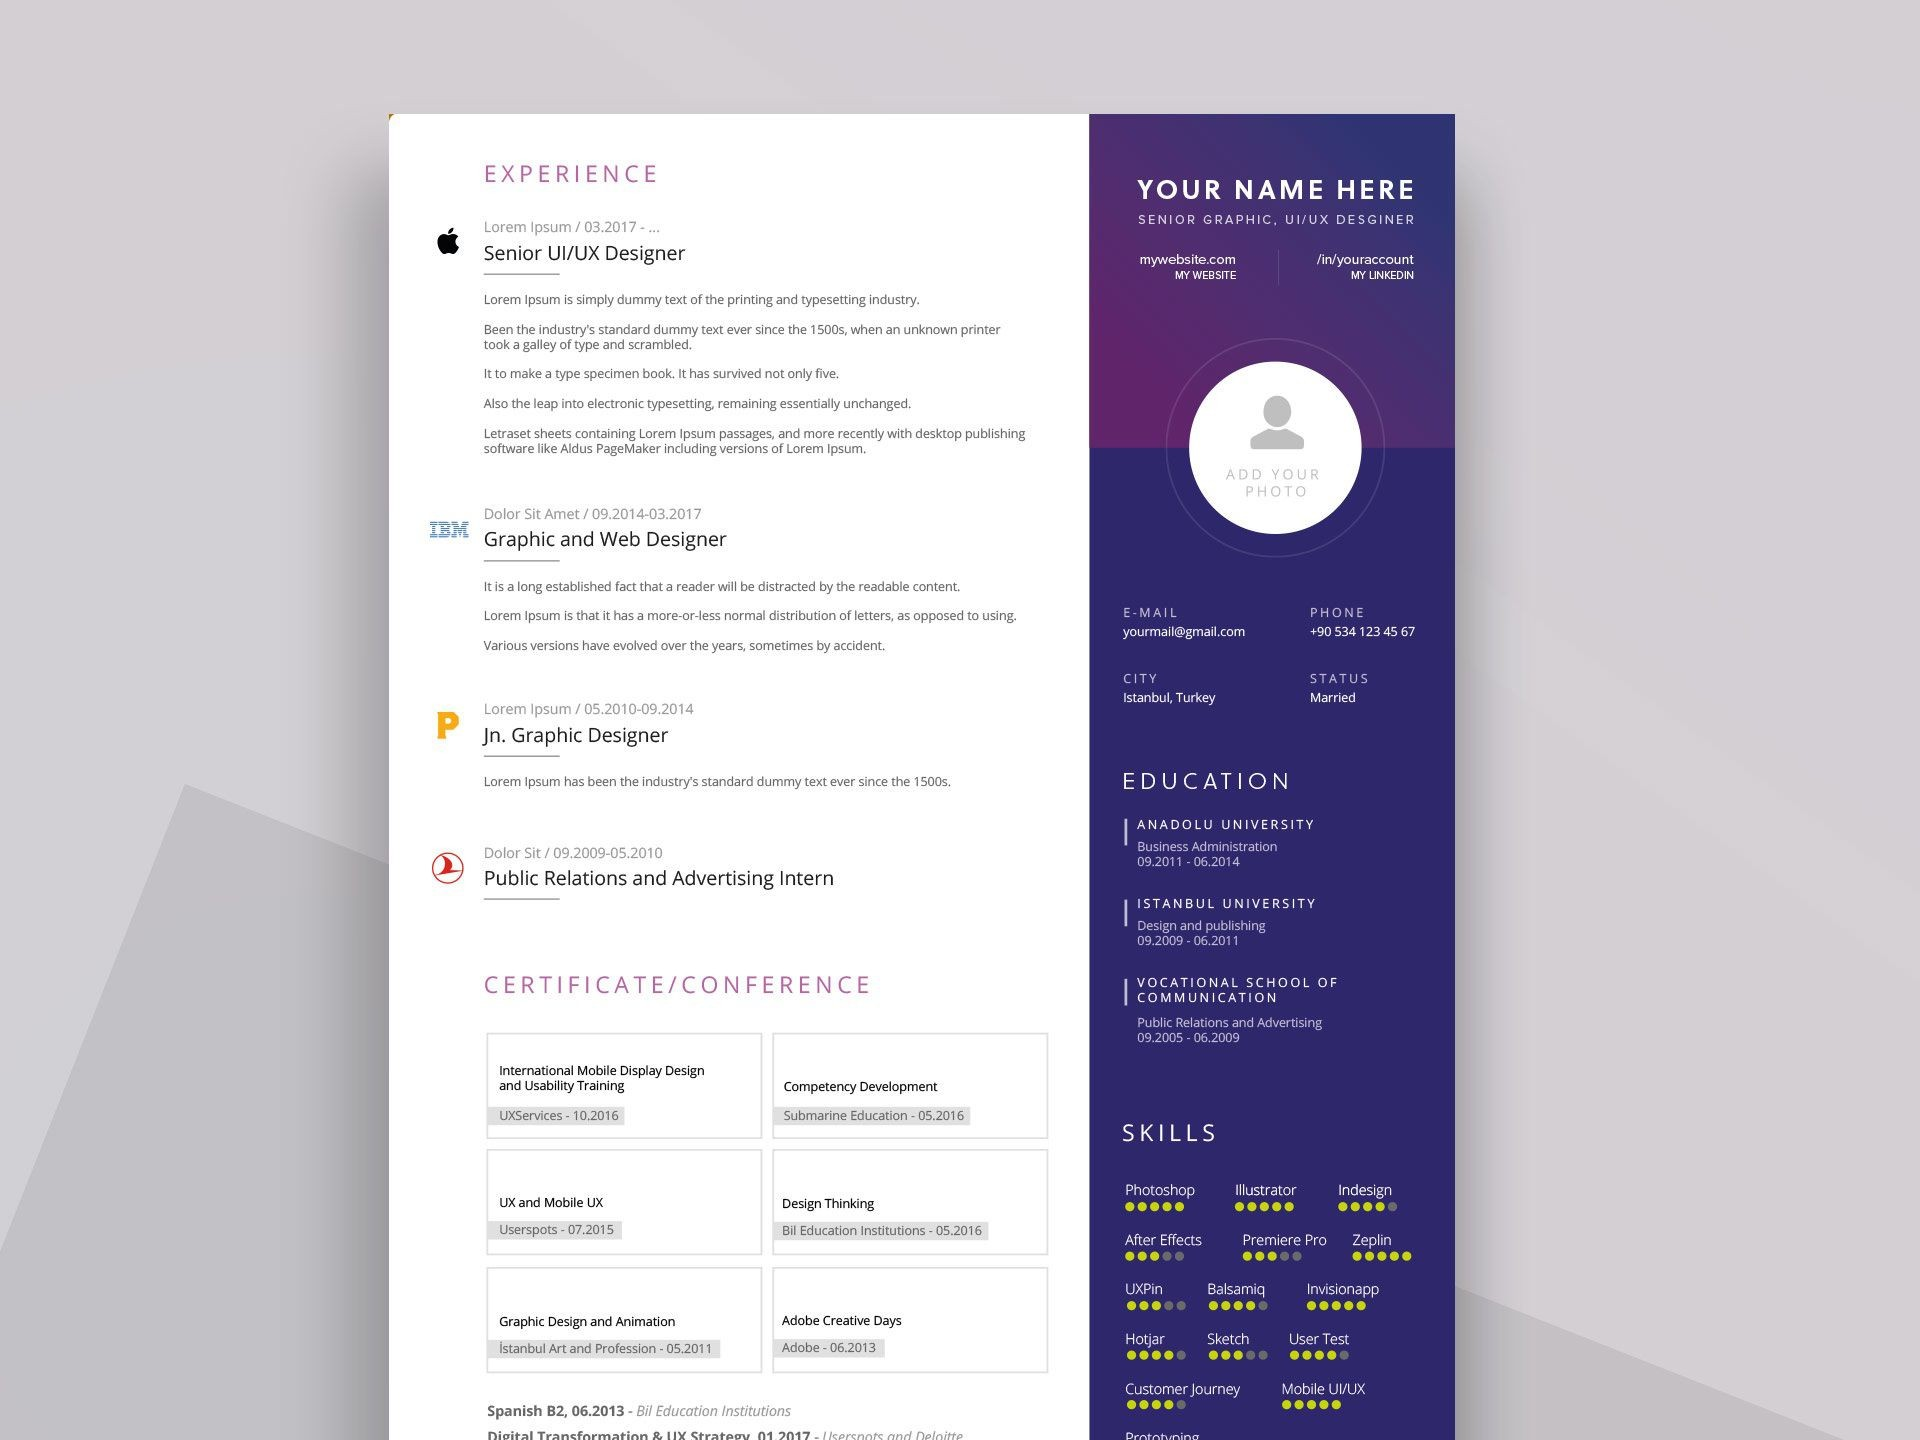 006 Awful Download Resume Template Free High Resolution  For Mac Best Creative Professional Microsoft Word1920